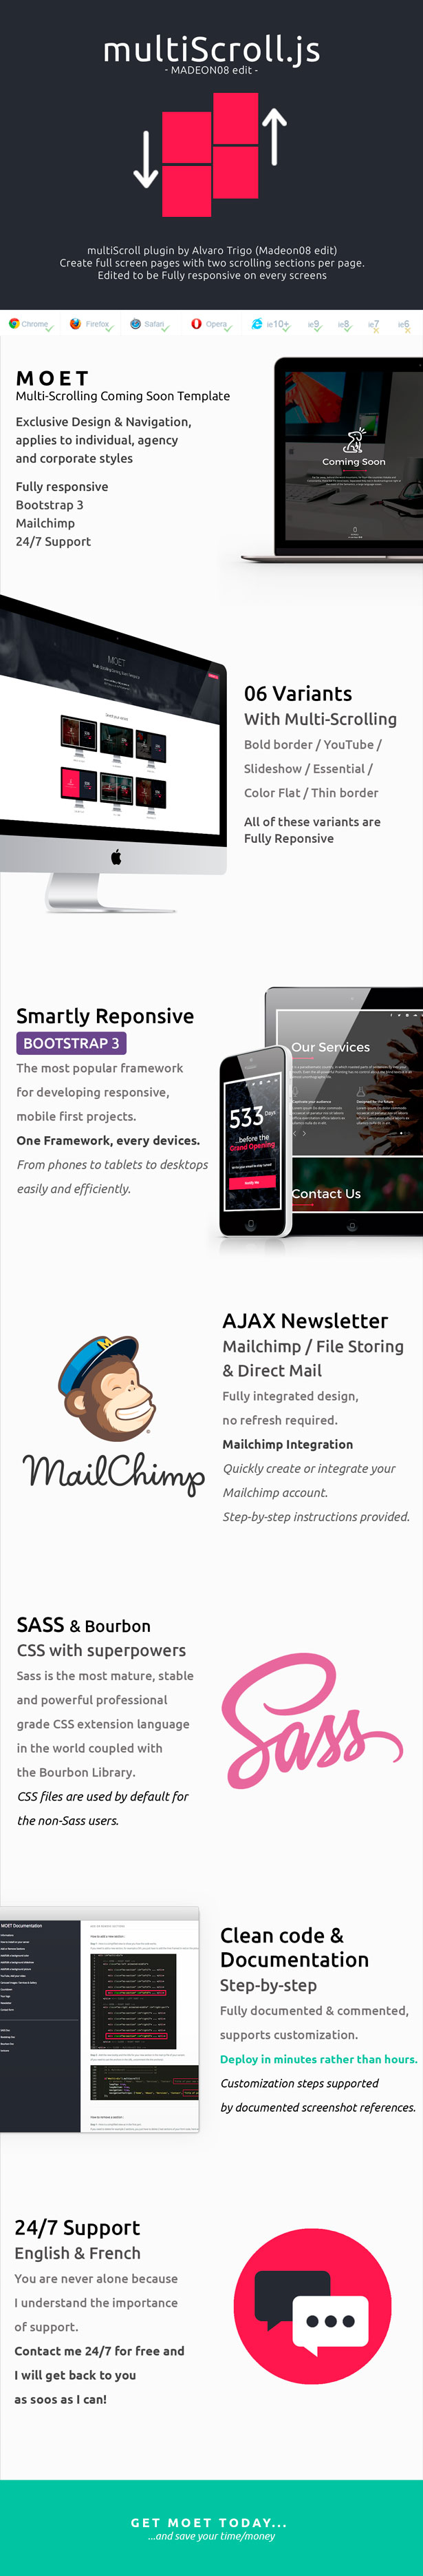 Moet Multi Scrolling Coming Soon Template By Madeon08 Themeforest